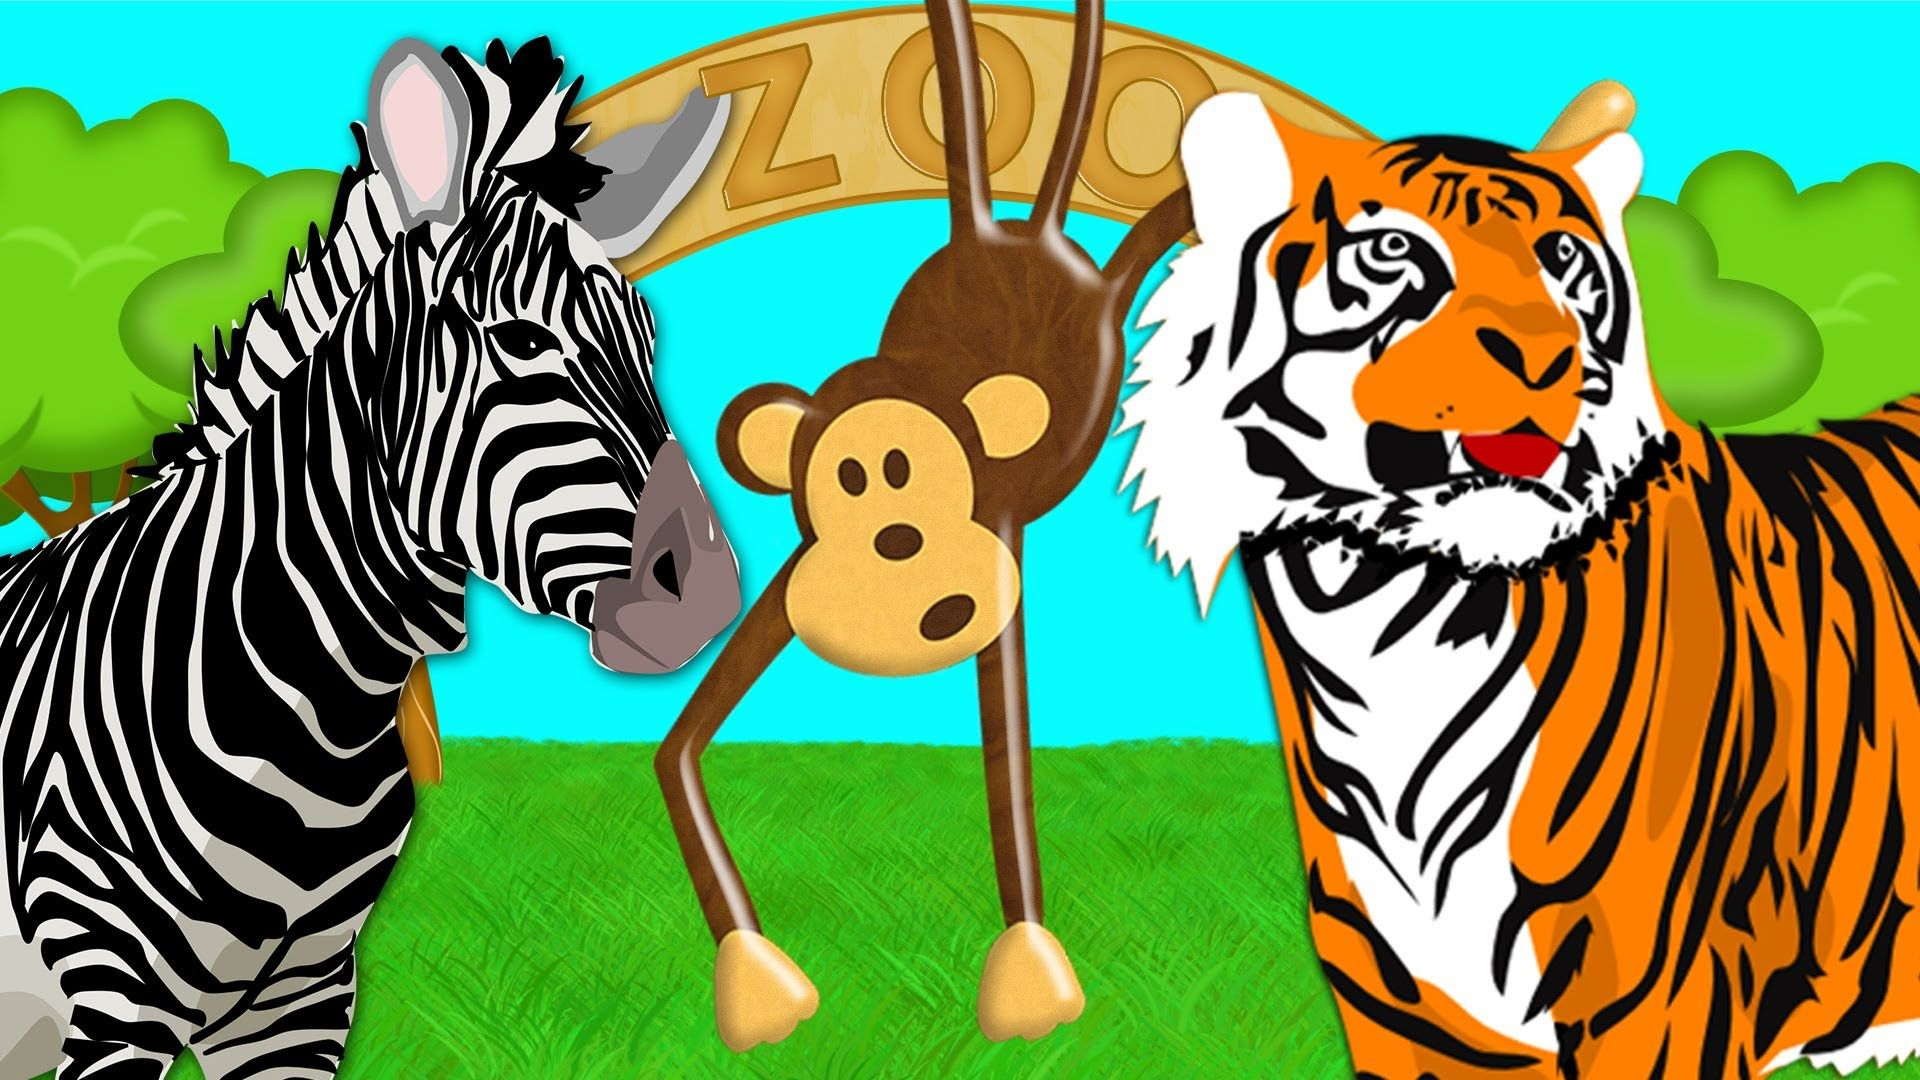 Super Simple Learning Zoo Animals Learn About Animals At